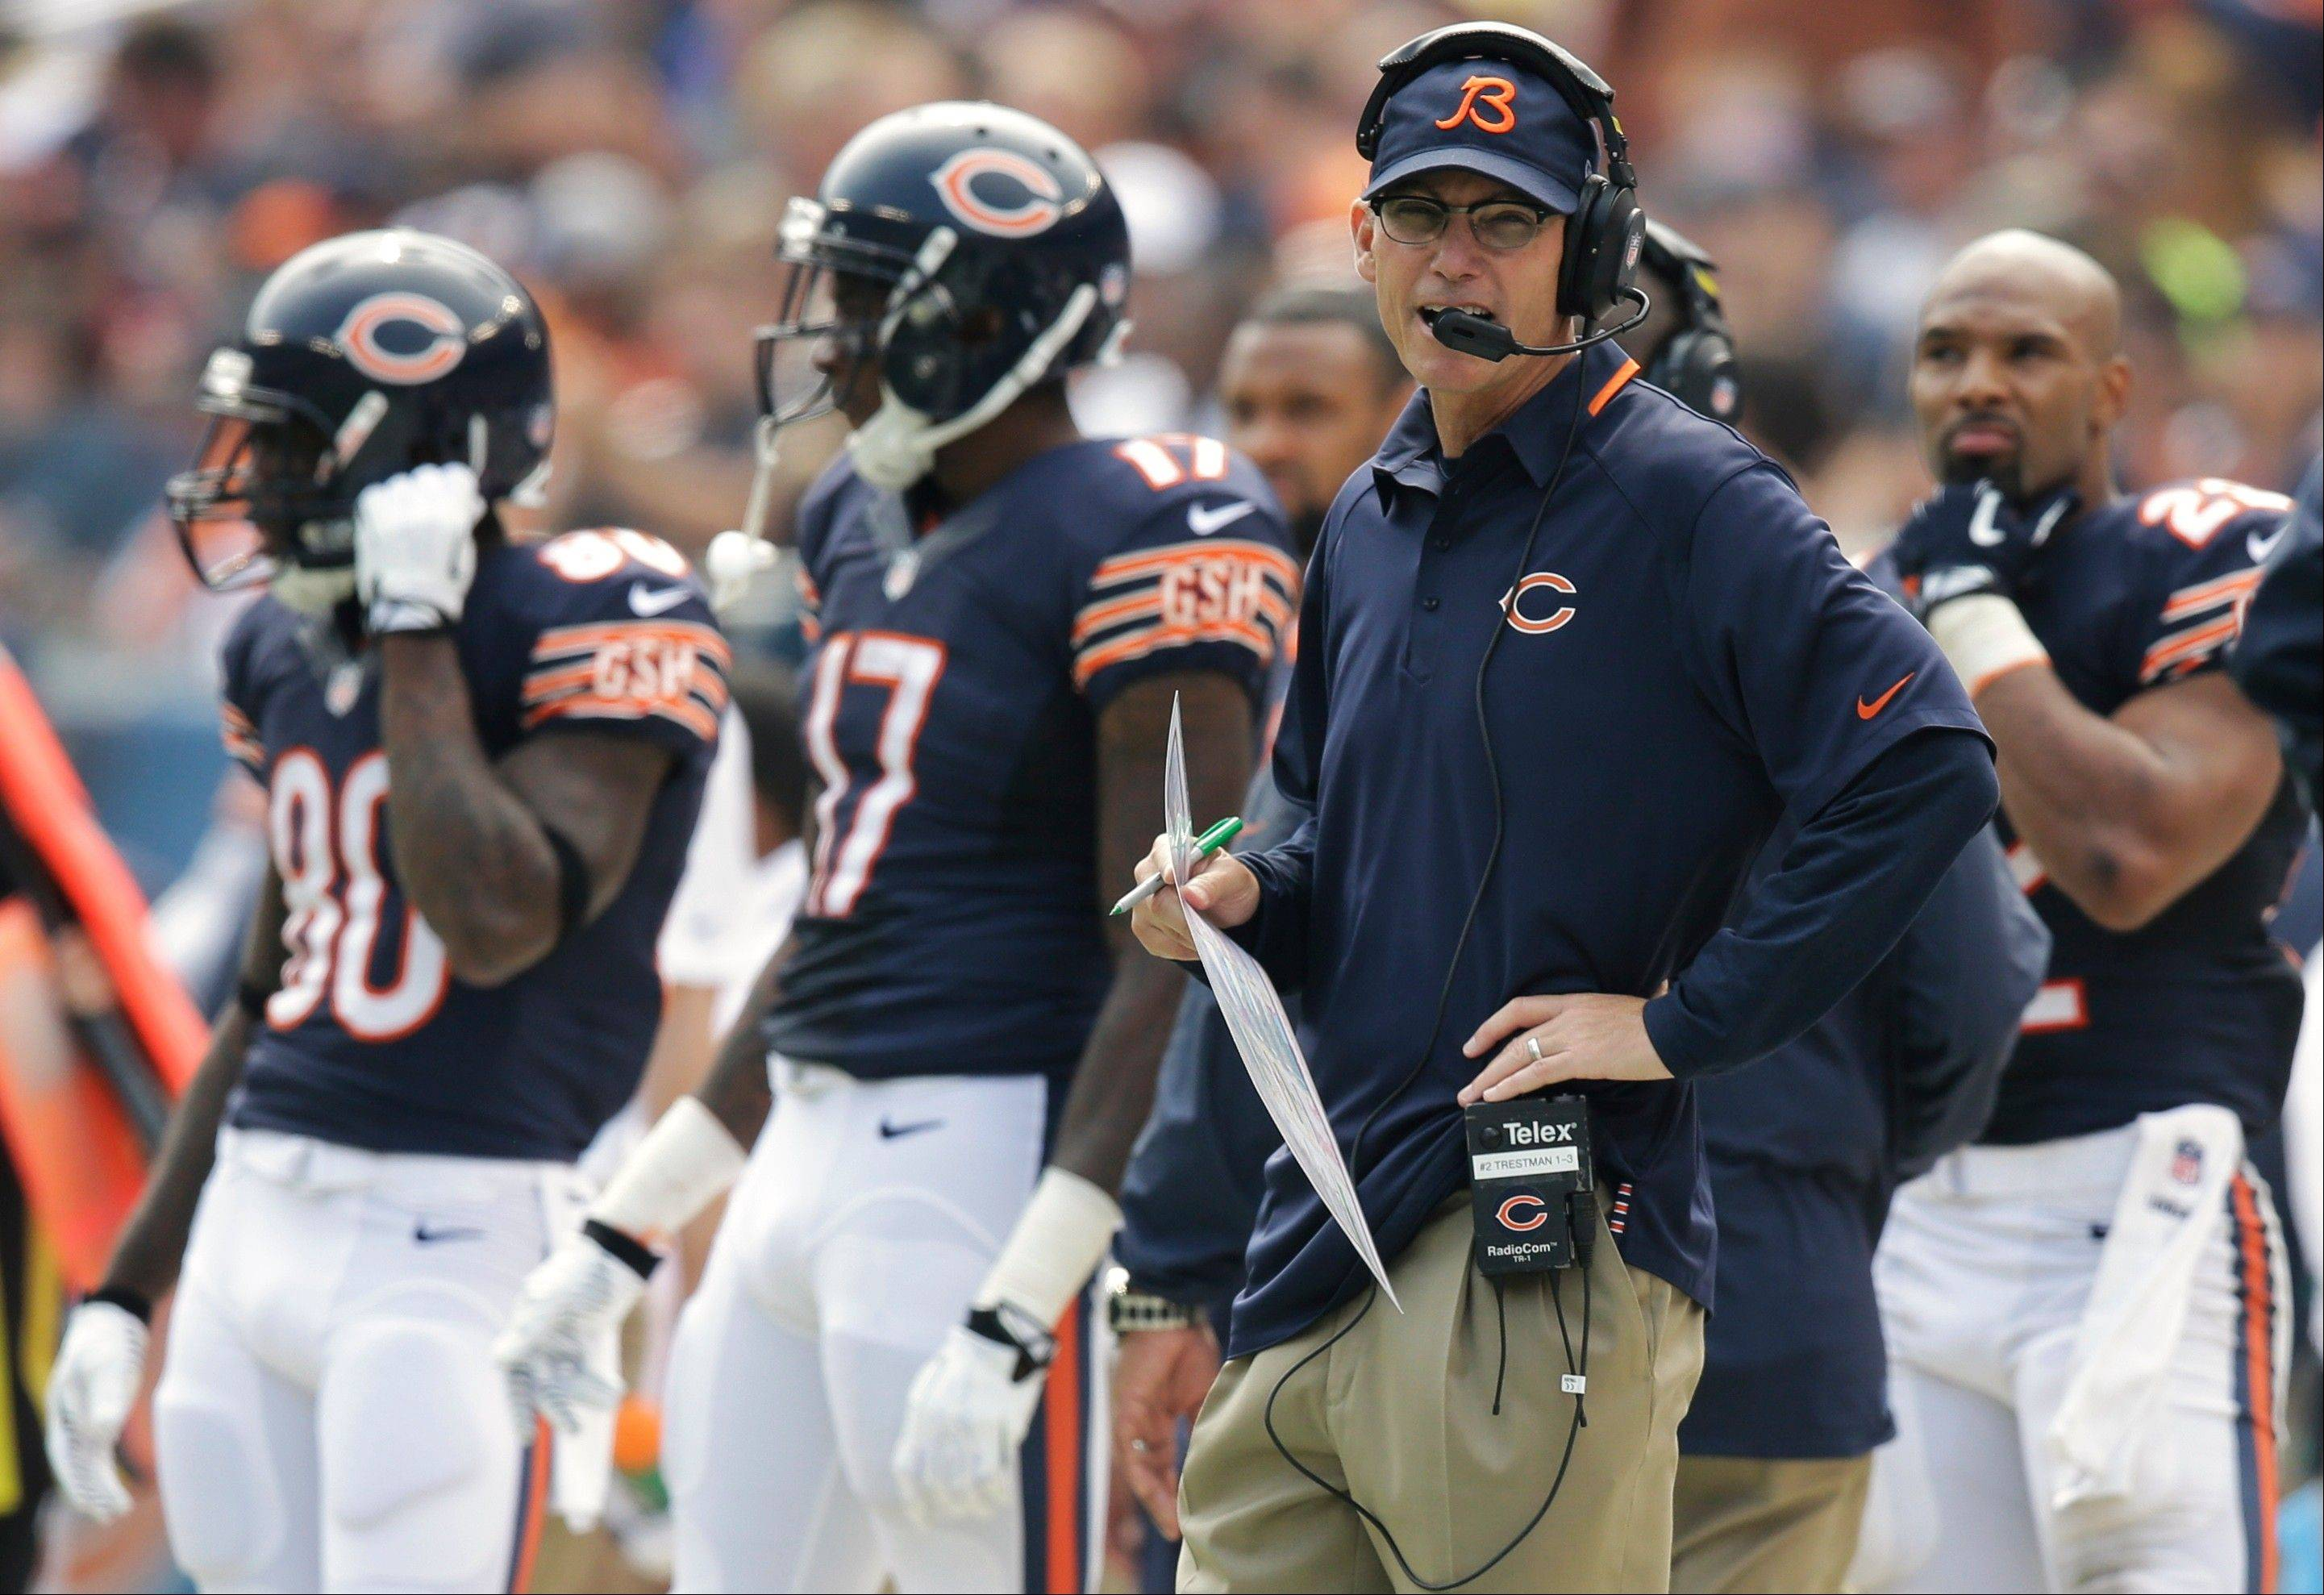 Chicago Bears coach Marc Trestman watches the team's game against the Cincinnati Bengals Sept. 8.